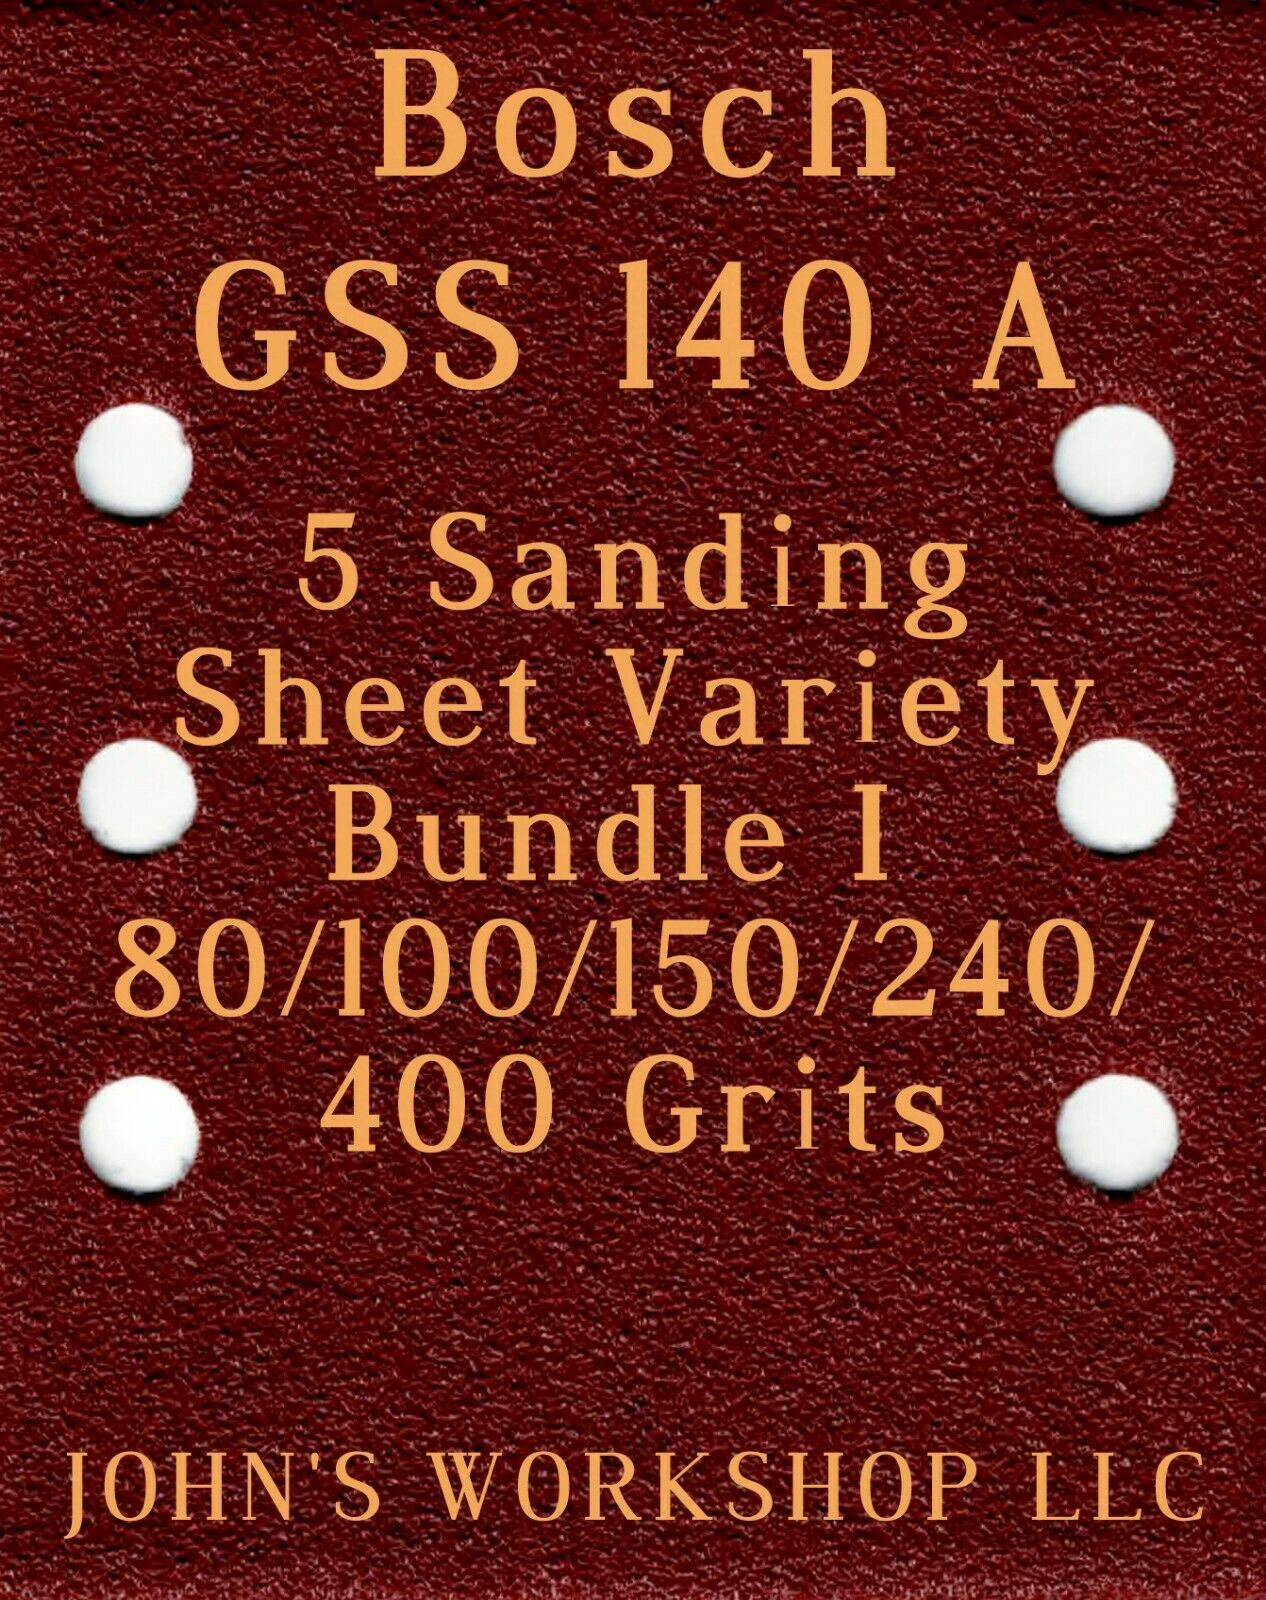 Primary image for Bosch GSS 140 A - 80/100/150/240/400 Grits - 5 Sandpaper Variety Bundle I